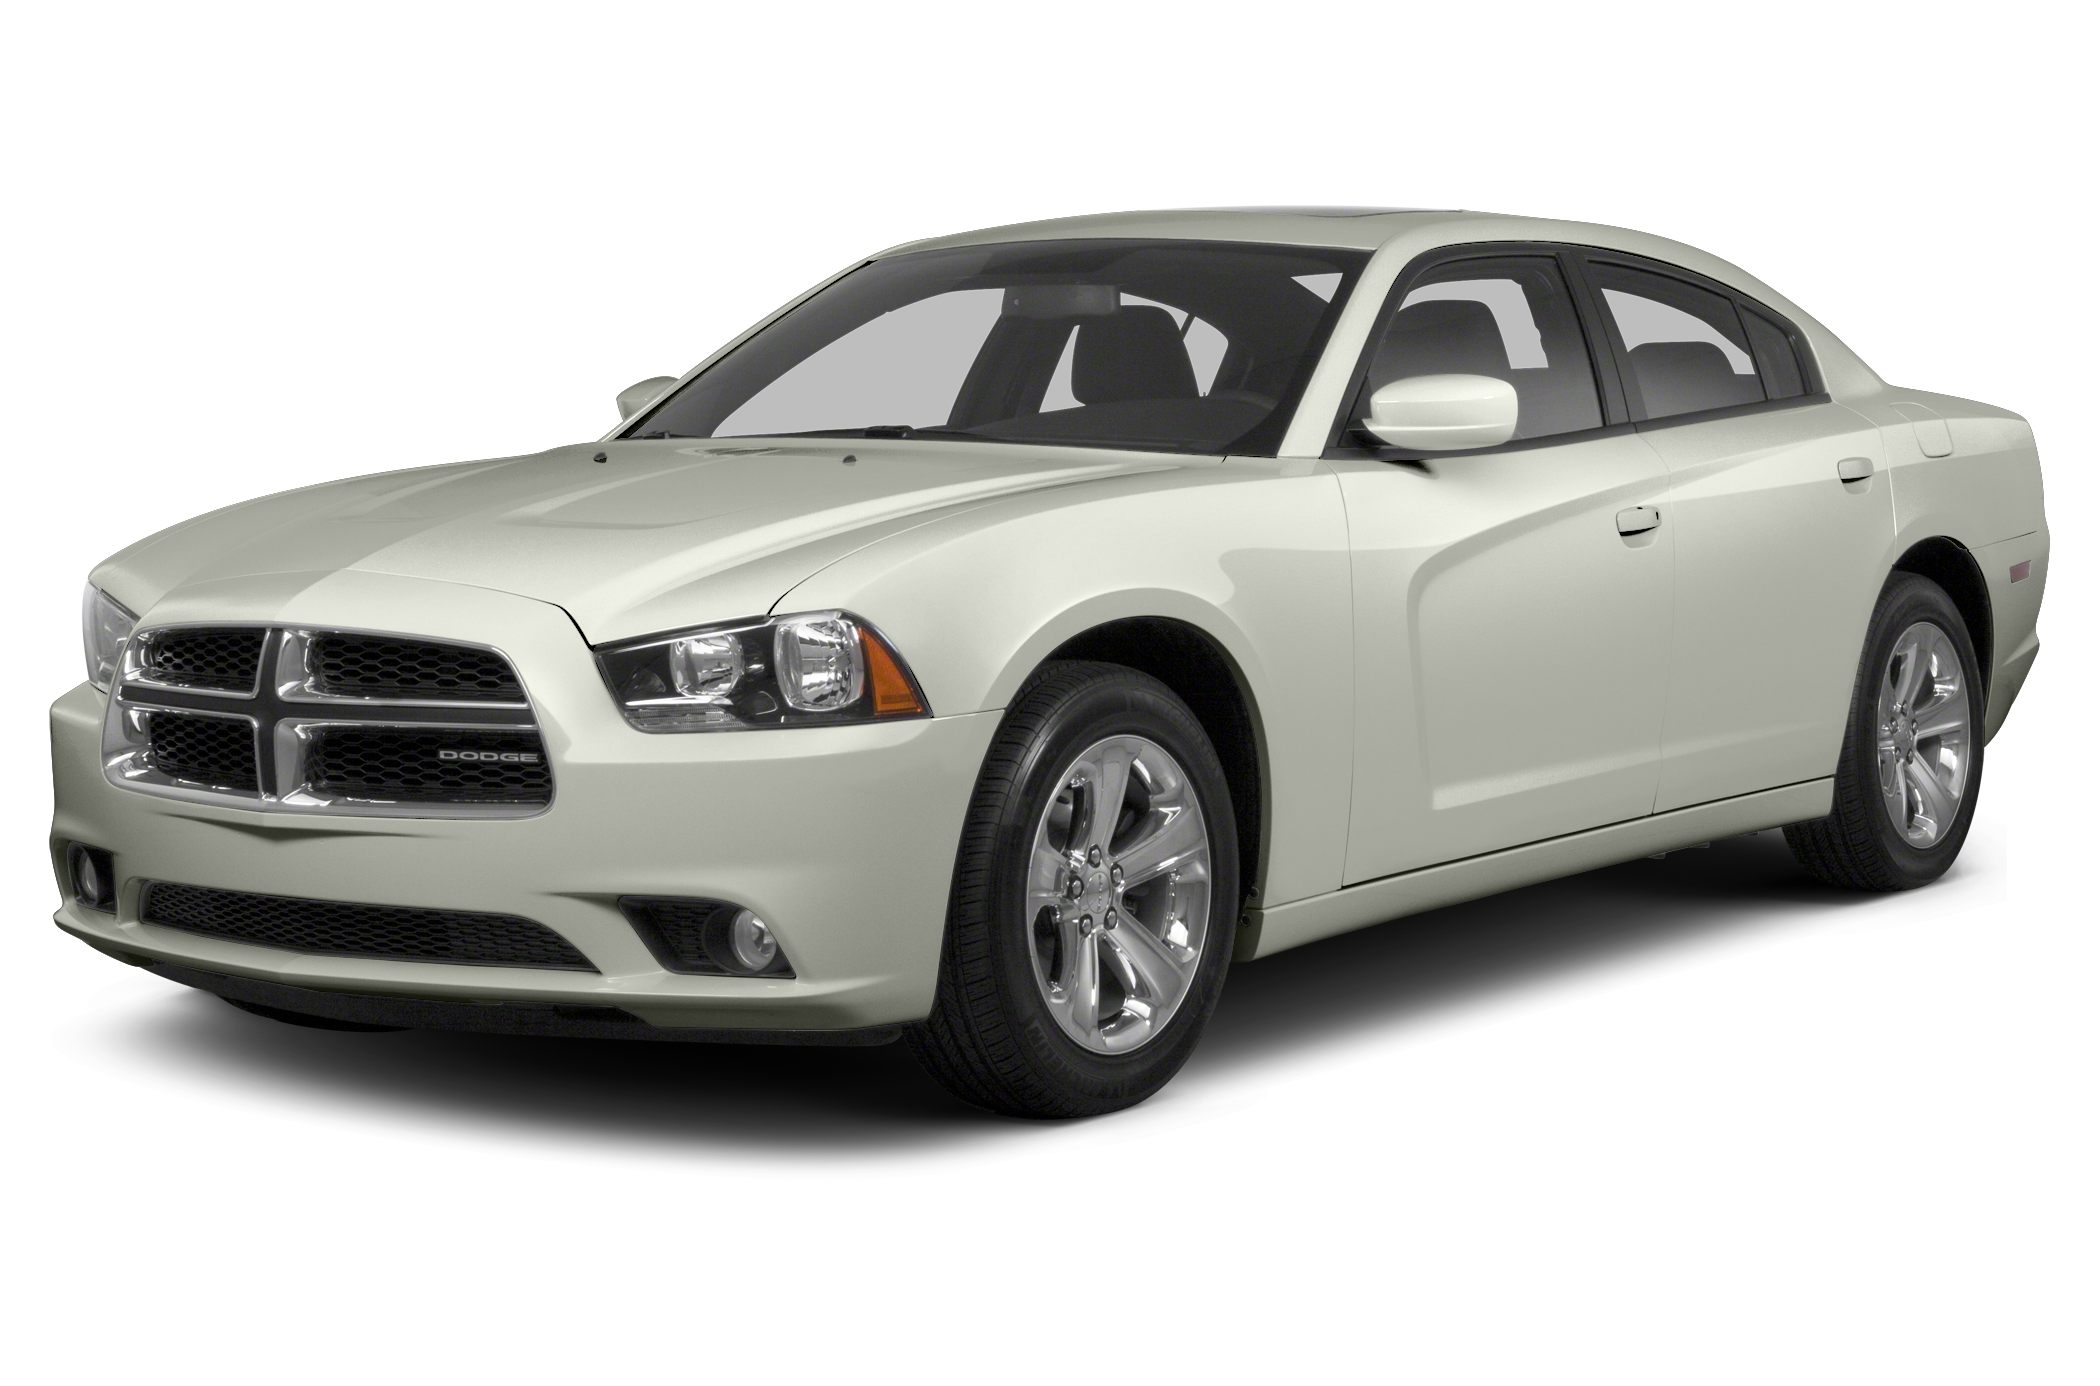 2013 Dodge Charger R T 4dr Rear Wheel Drive Sedan Specs And Prices